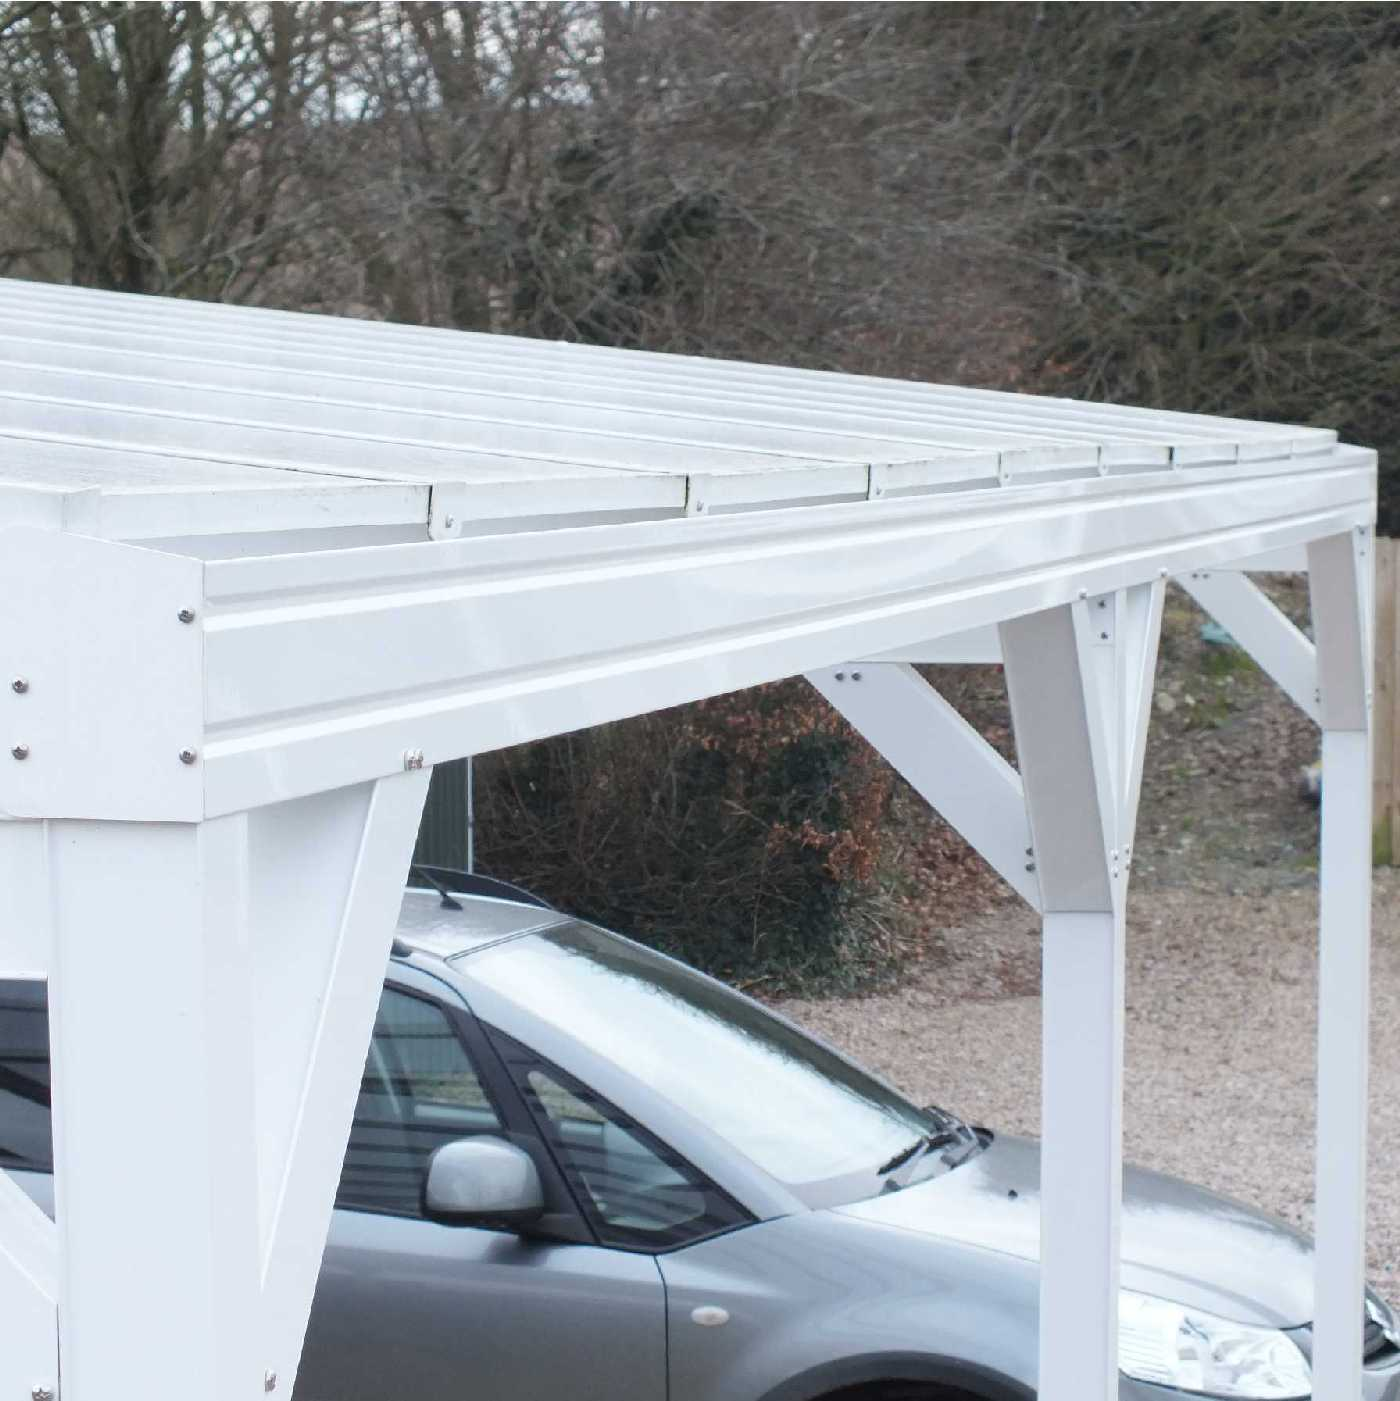 Omega Smart Free-Standing, MonoPitch Roof Canopy with 16mm Polycarbonate Glazing - 3.1m (W) x 3.0m (P), (4) Supporting Posts from Omega Build